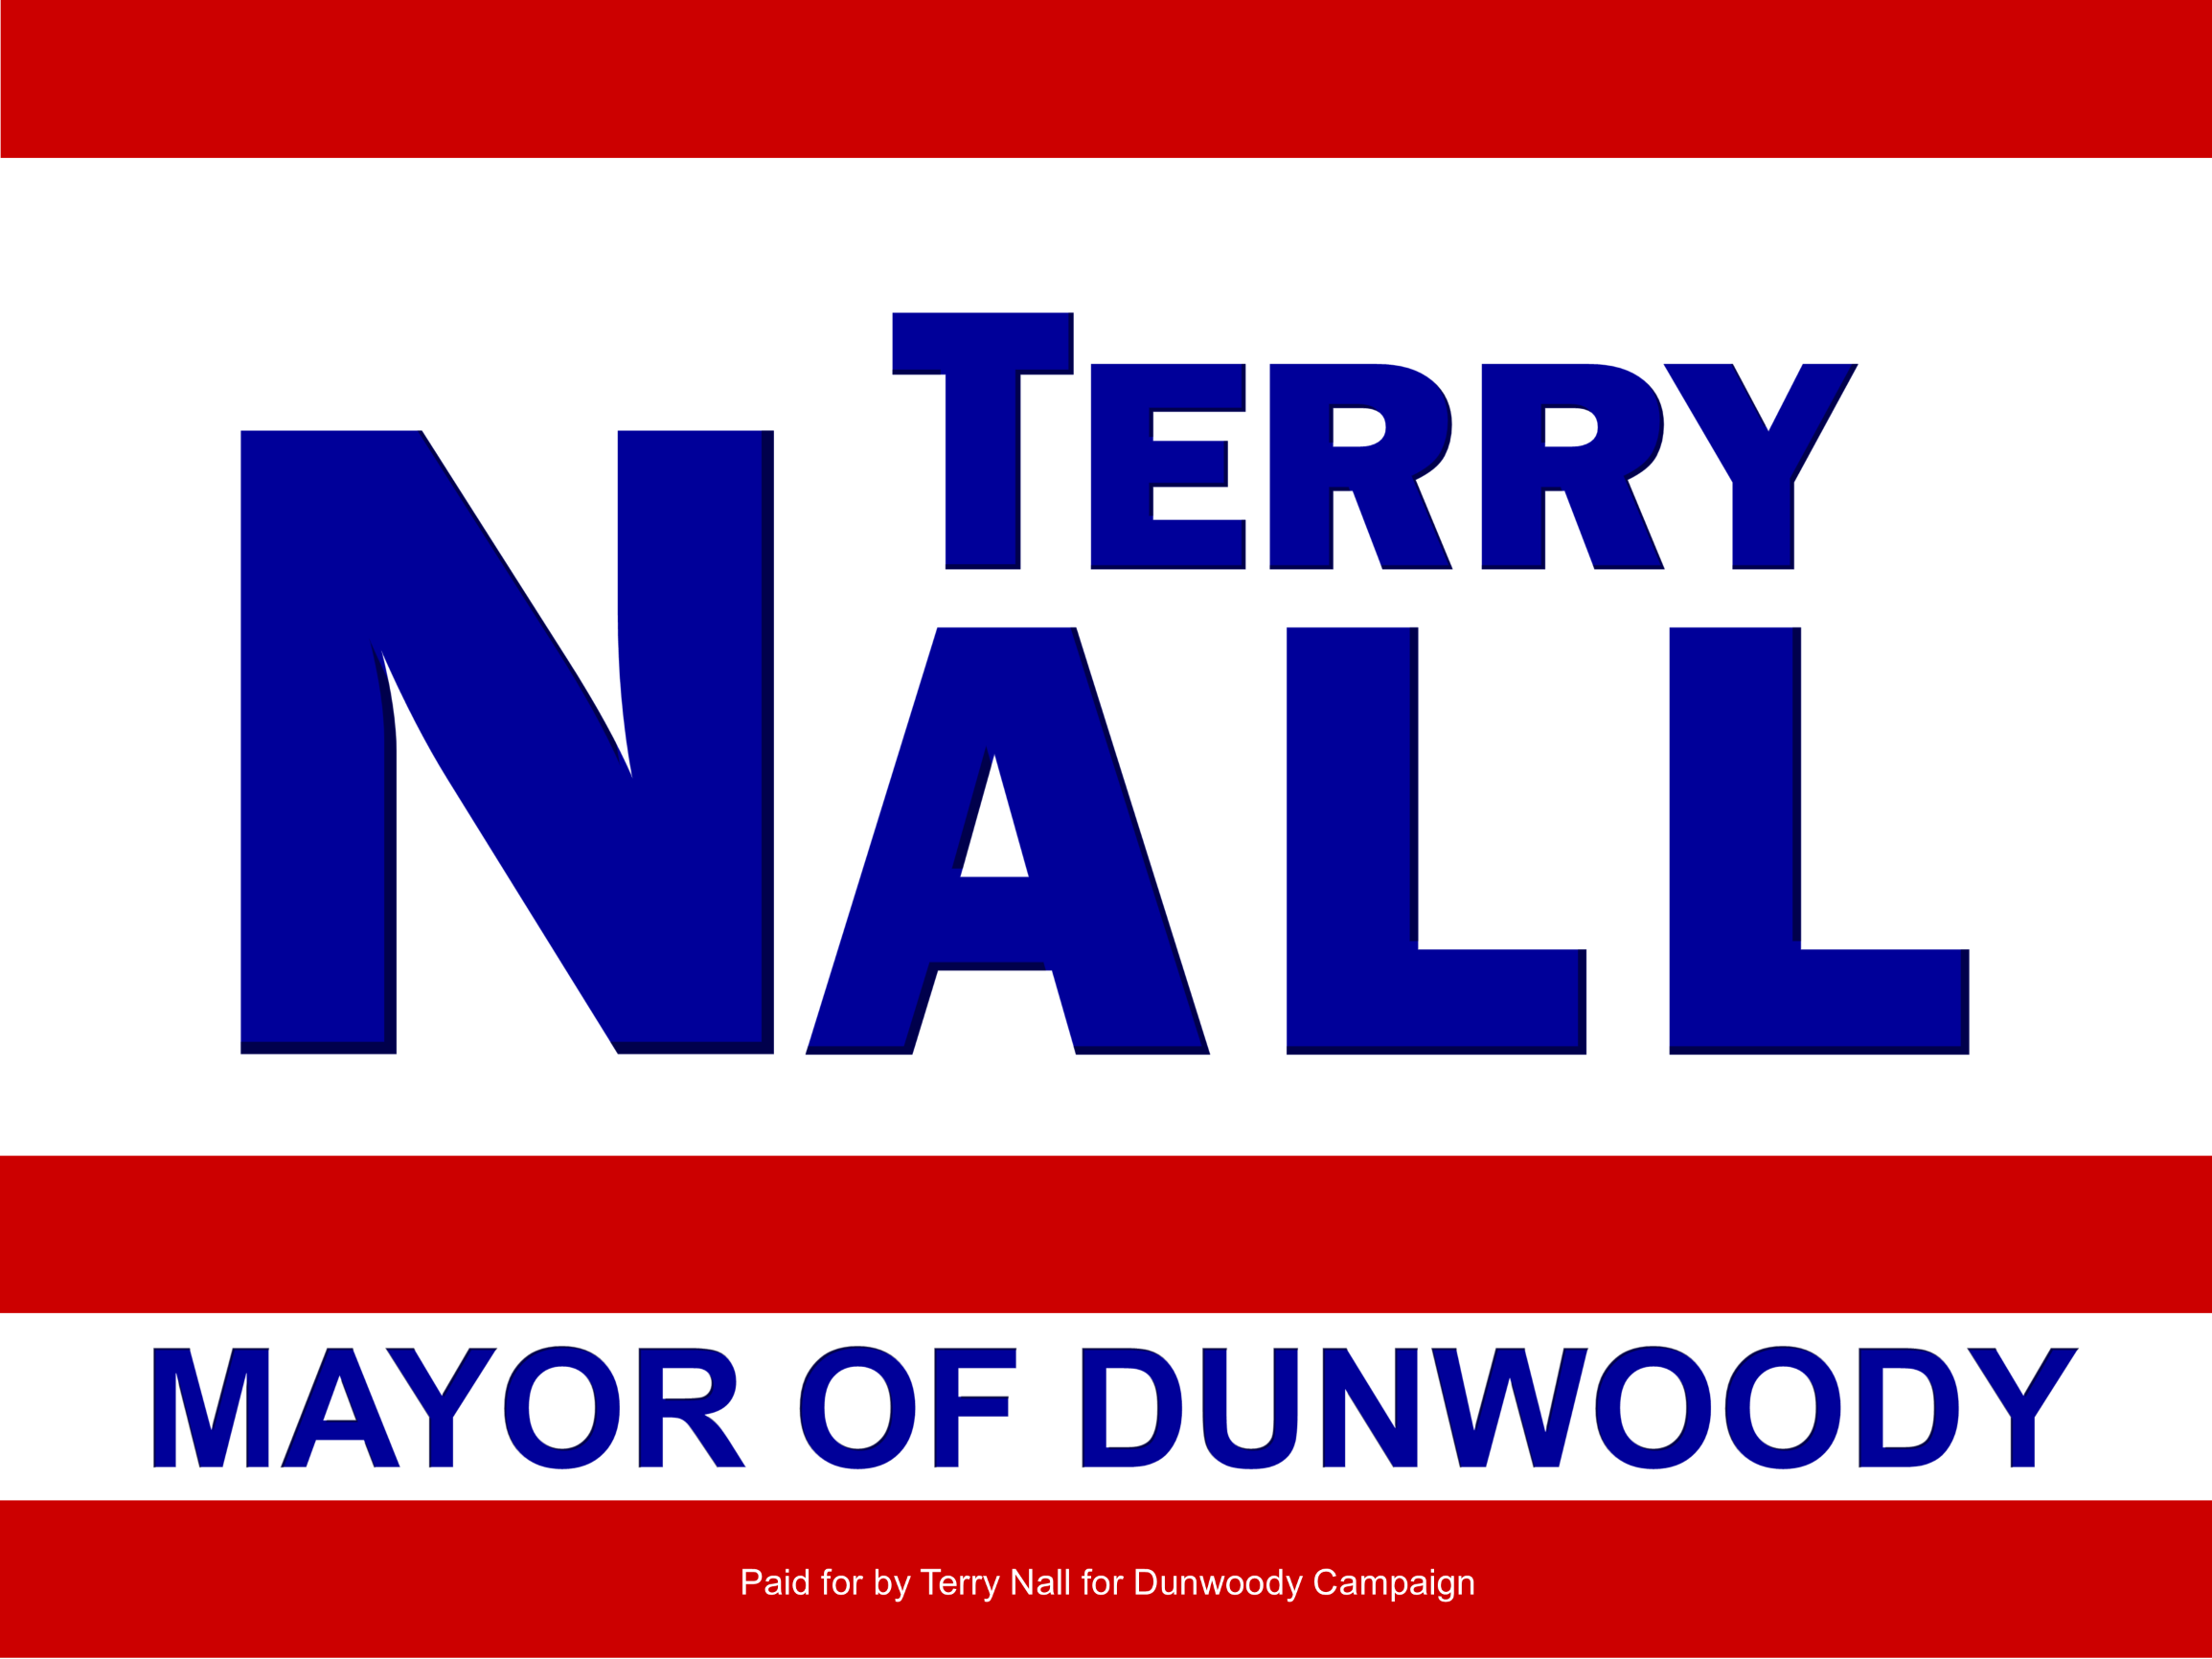 Terry Nall for Dunwoody Mayor